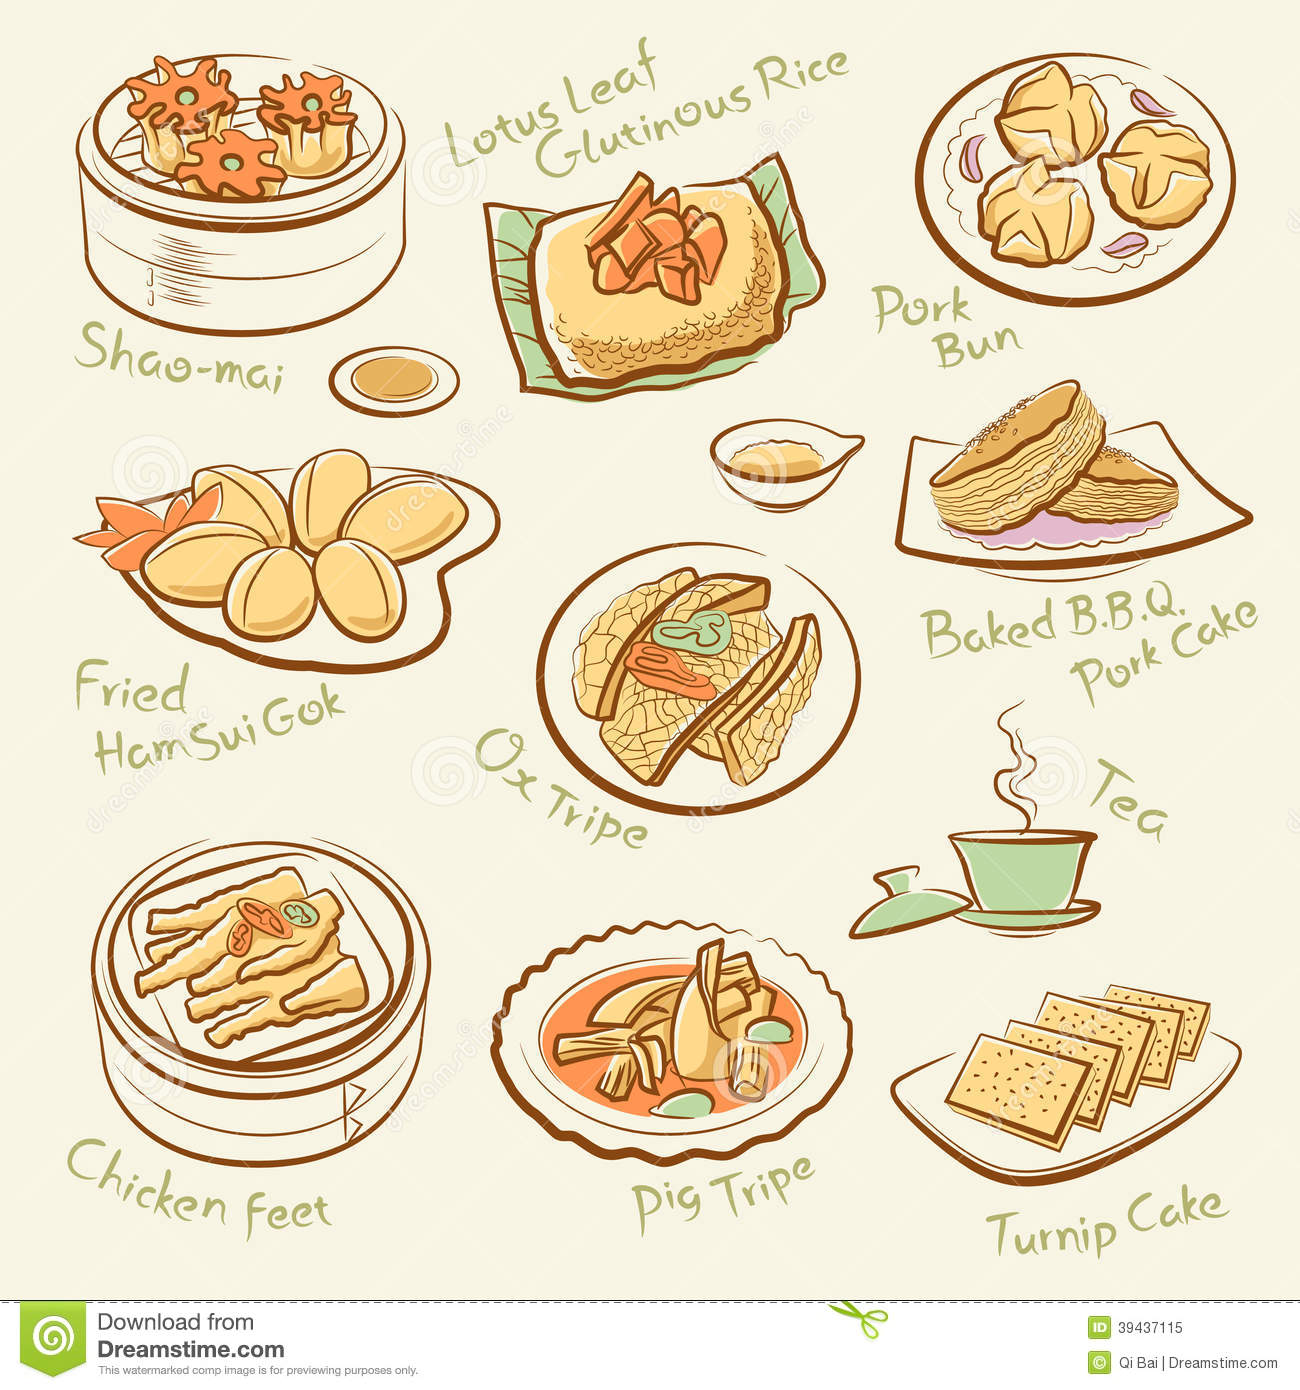 Chinese food names food set of chinese food stock vector image 39437115 forumfinder Choice Image